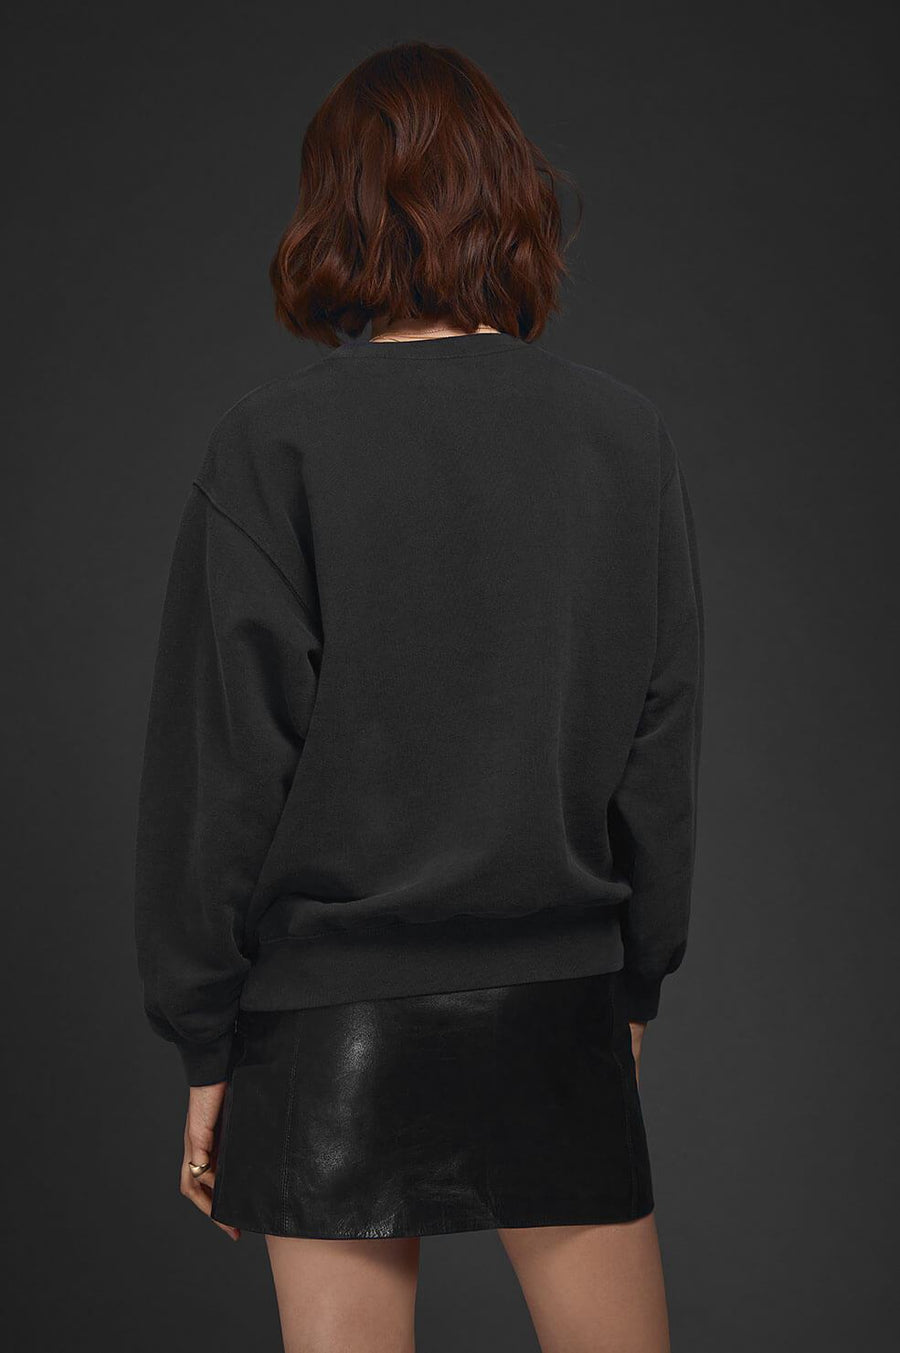 Serpent Sweatshirt - Black